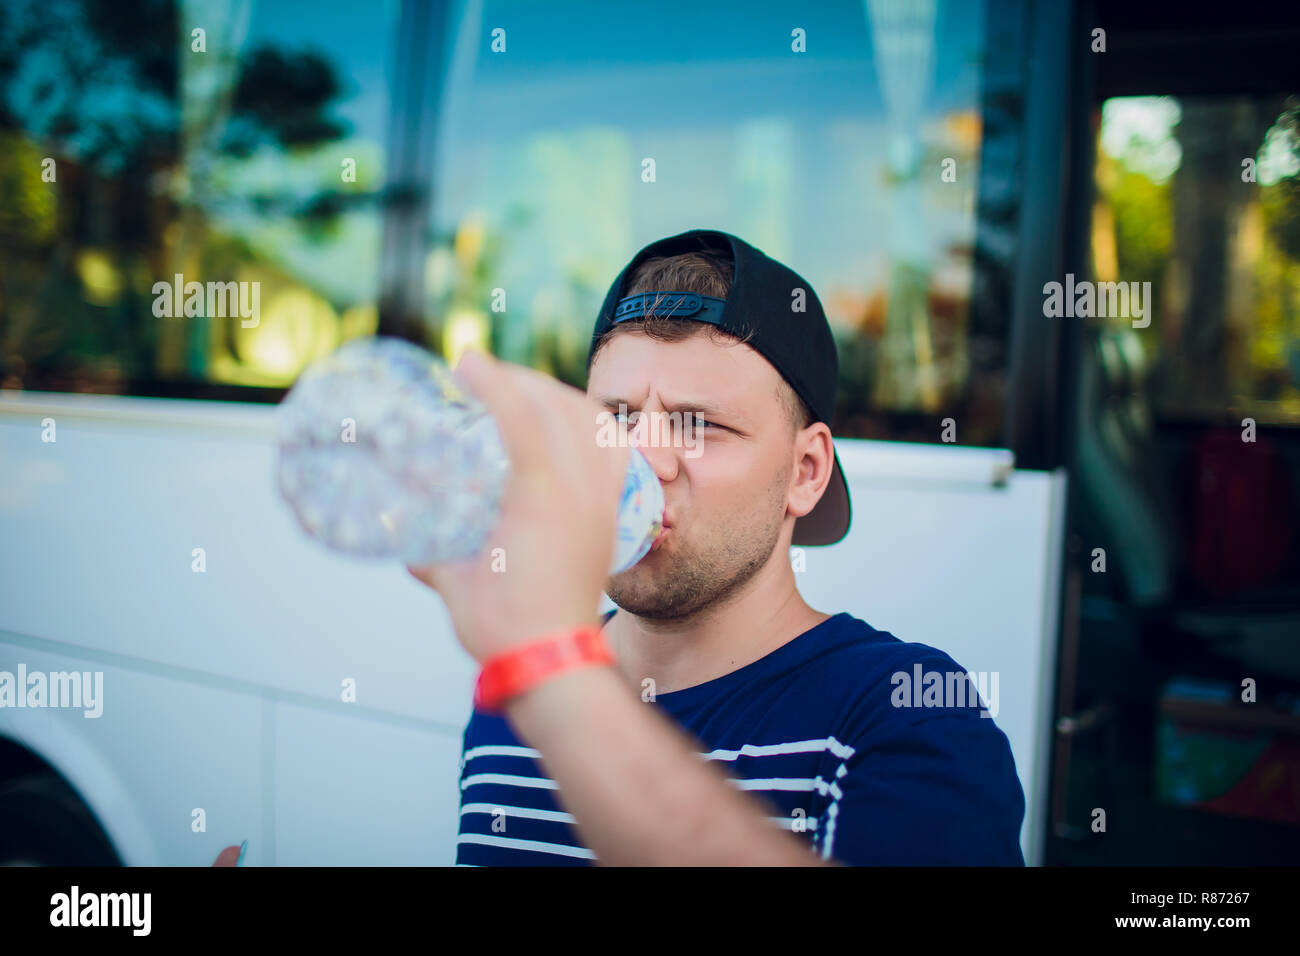 Handsome man drinking water after running outdoors on the background of the bus, tourist. Stock Photo